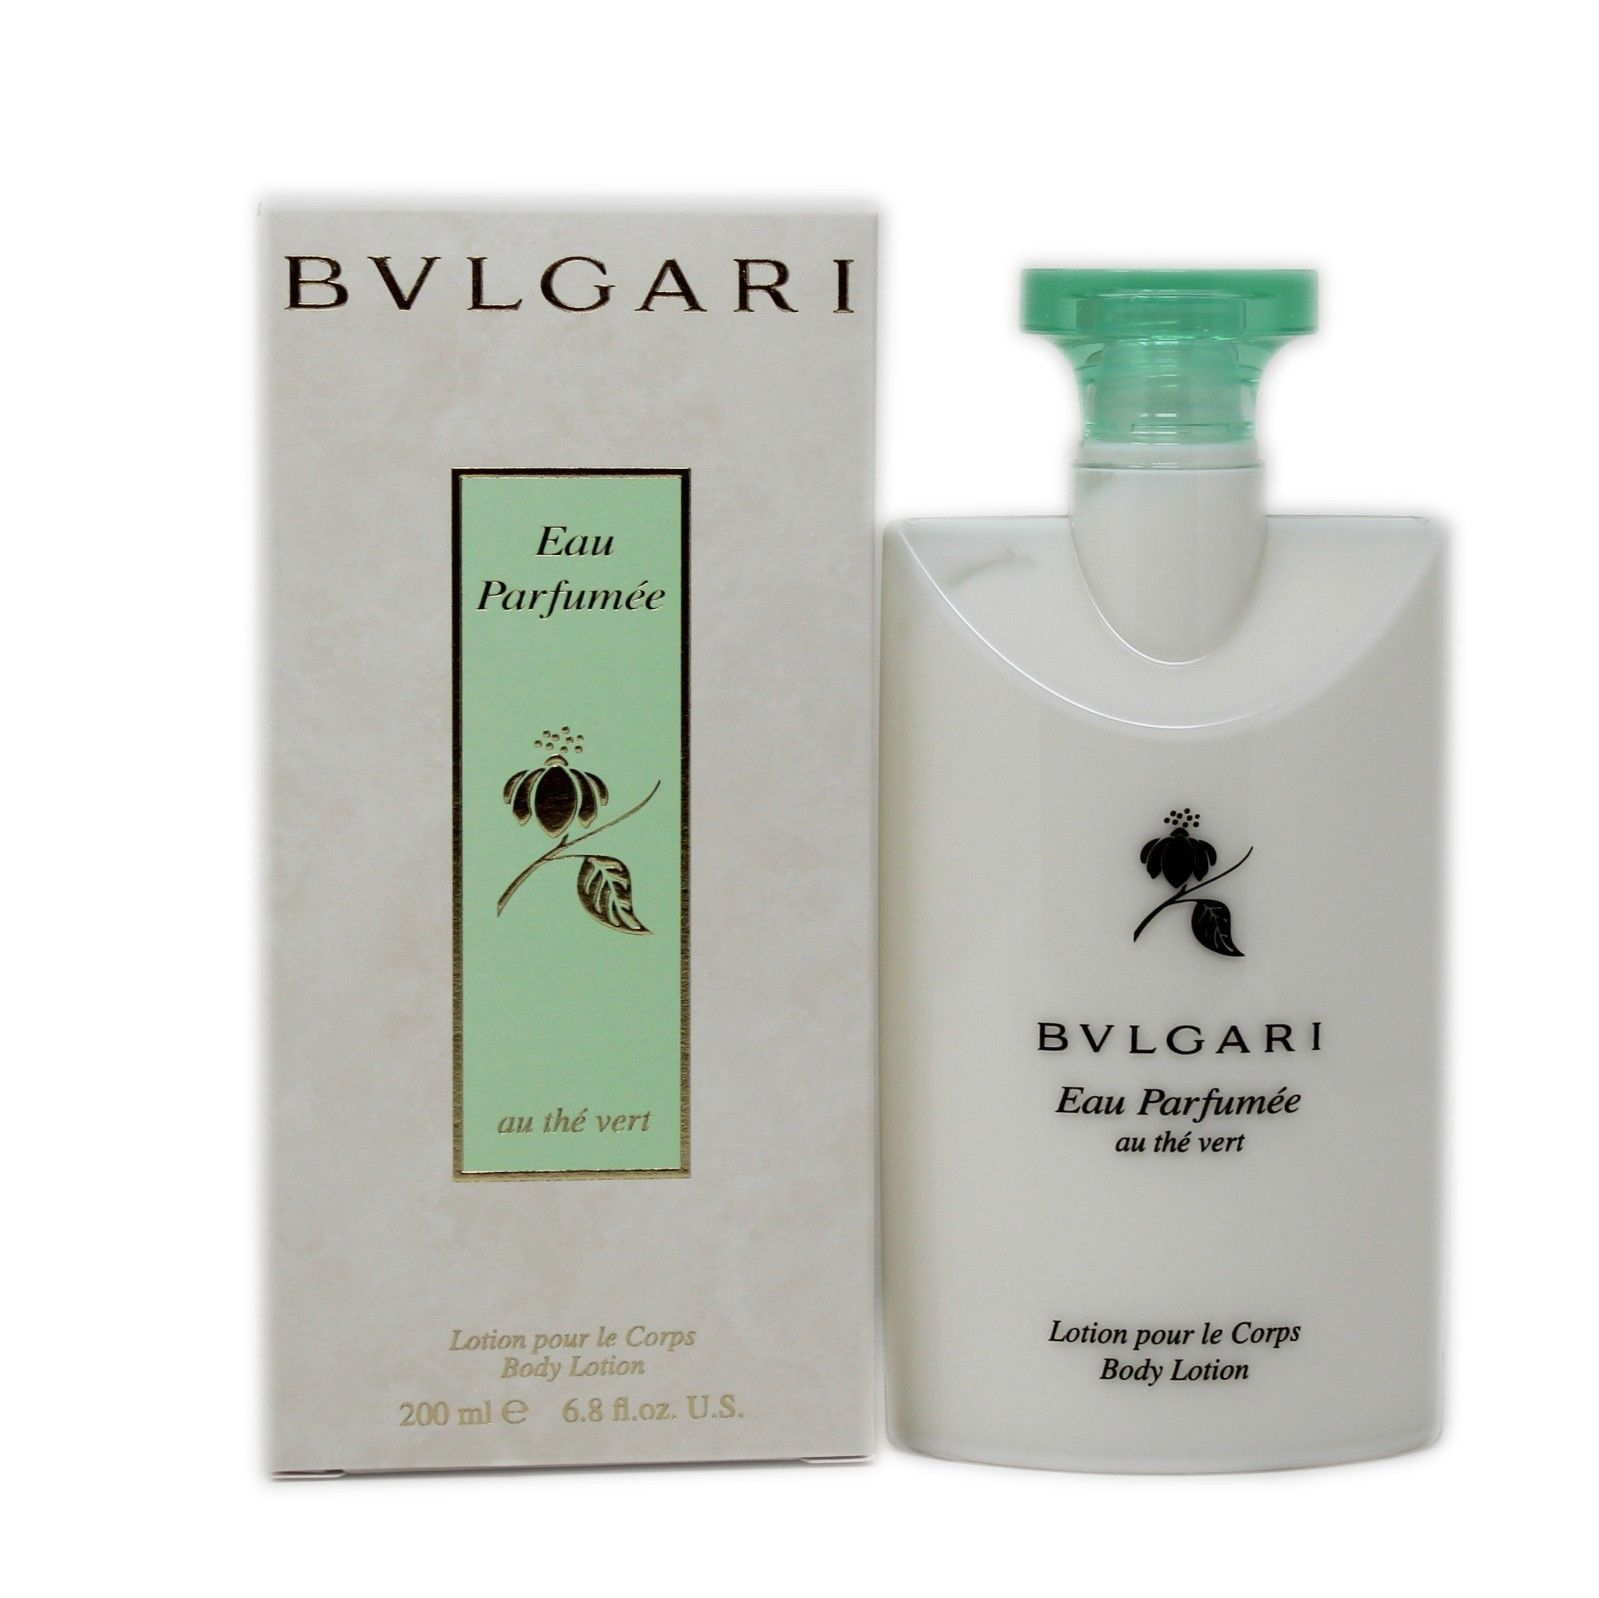 Primary image for BVLGARI EAU PARFUMEE AU THE VERT BODY LOTION 200 ML/6.8 FL.OZ. NIB-BV10036772